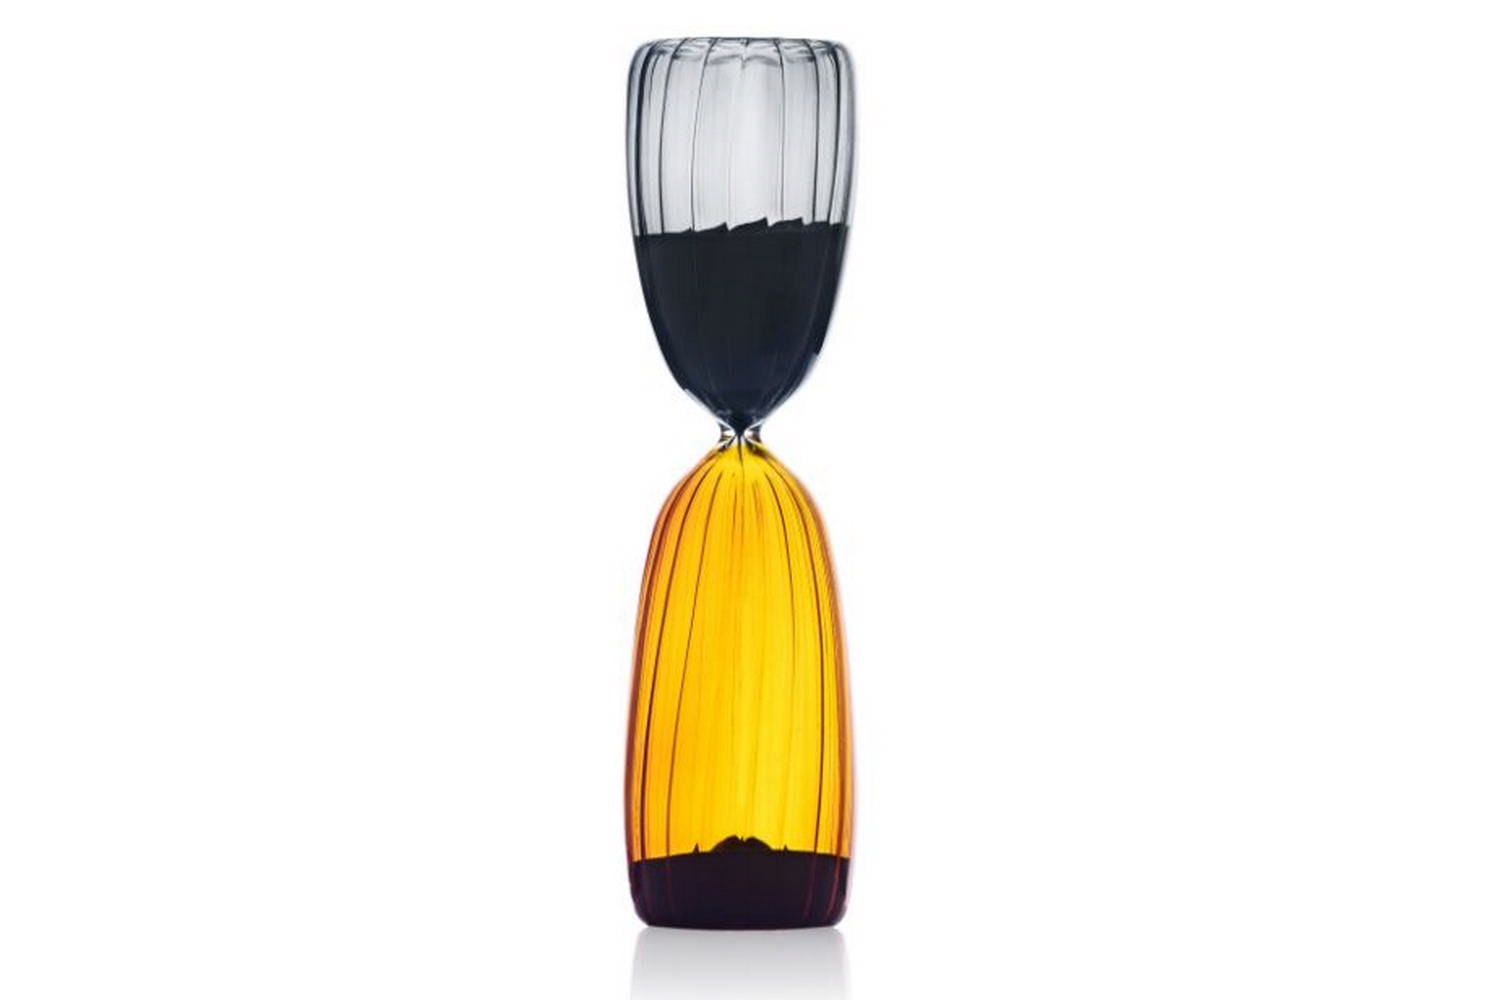 Times Hourglass 15 Minutes - Amber/Smoke by Denis Guidone for Ichendorf Milano